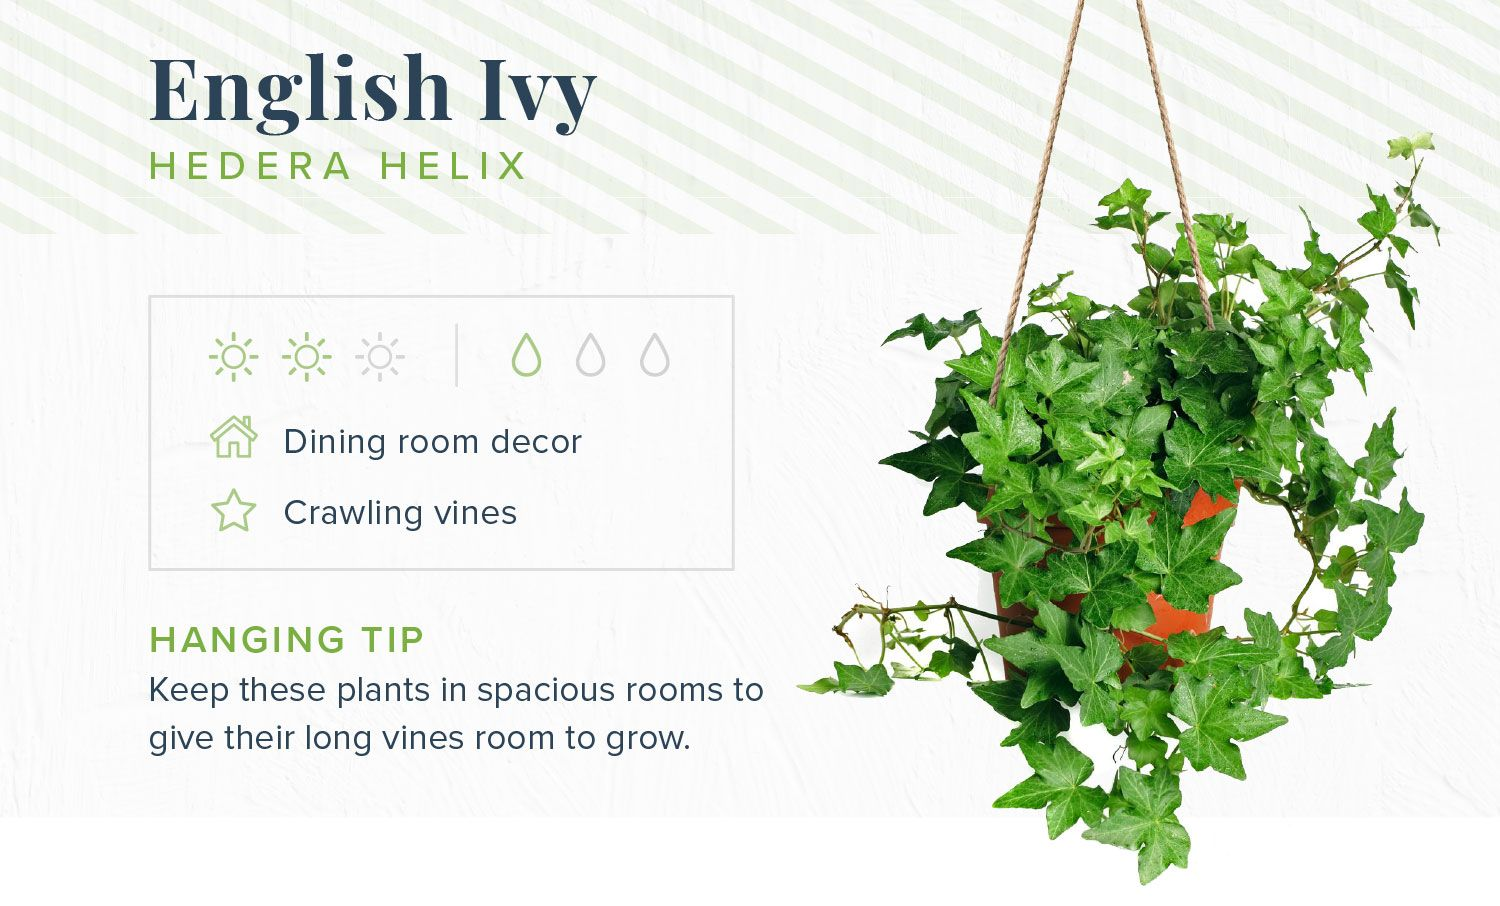 16 Indoor Hanging Plants To Decorate Your Home Proflowers Ivy Plant Indoor Hanging Plants Indoor Hanging Plants